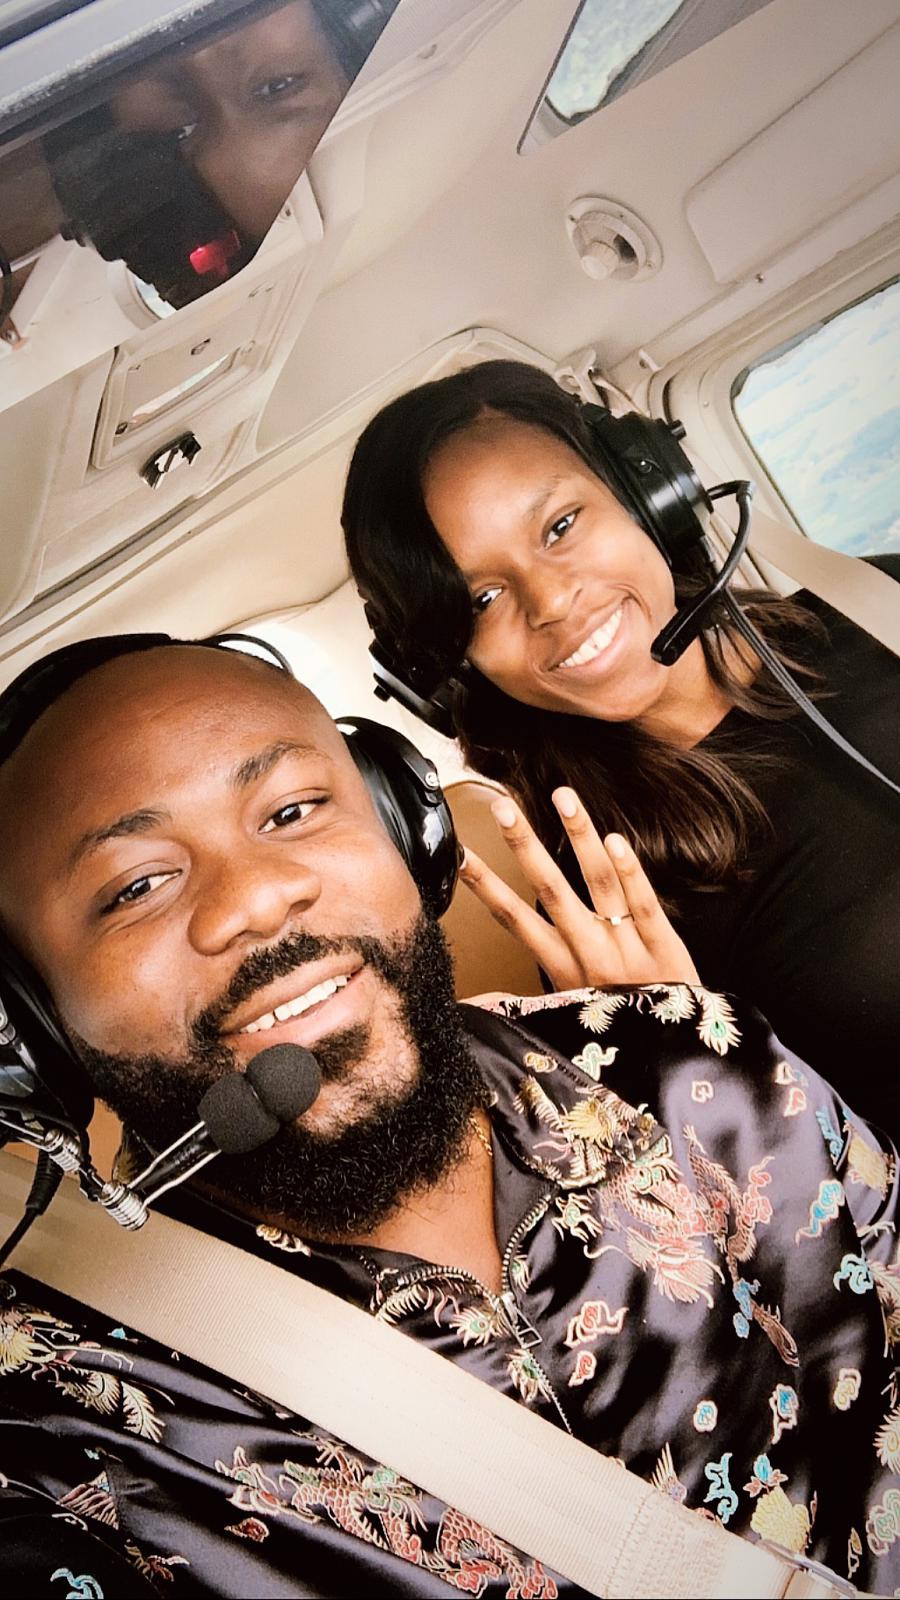 Nigerian Man Samuel Enyi aka DJ IREM$ becomes the first Black man to engage his fianc? on a single engine airplane